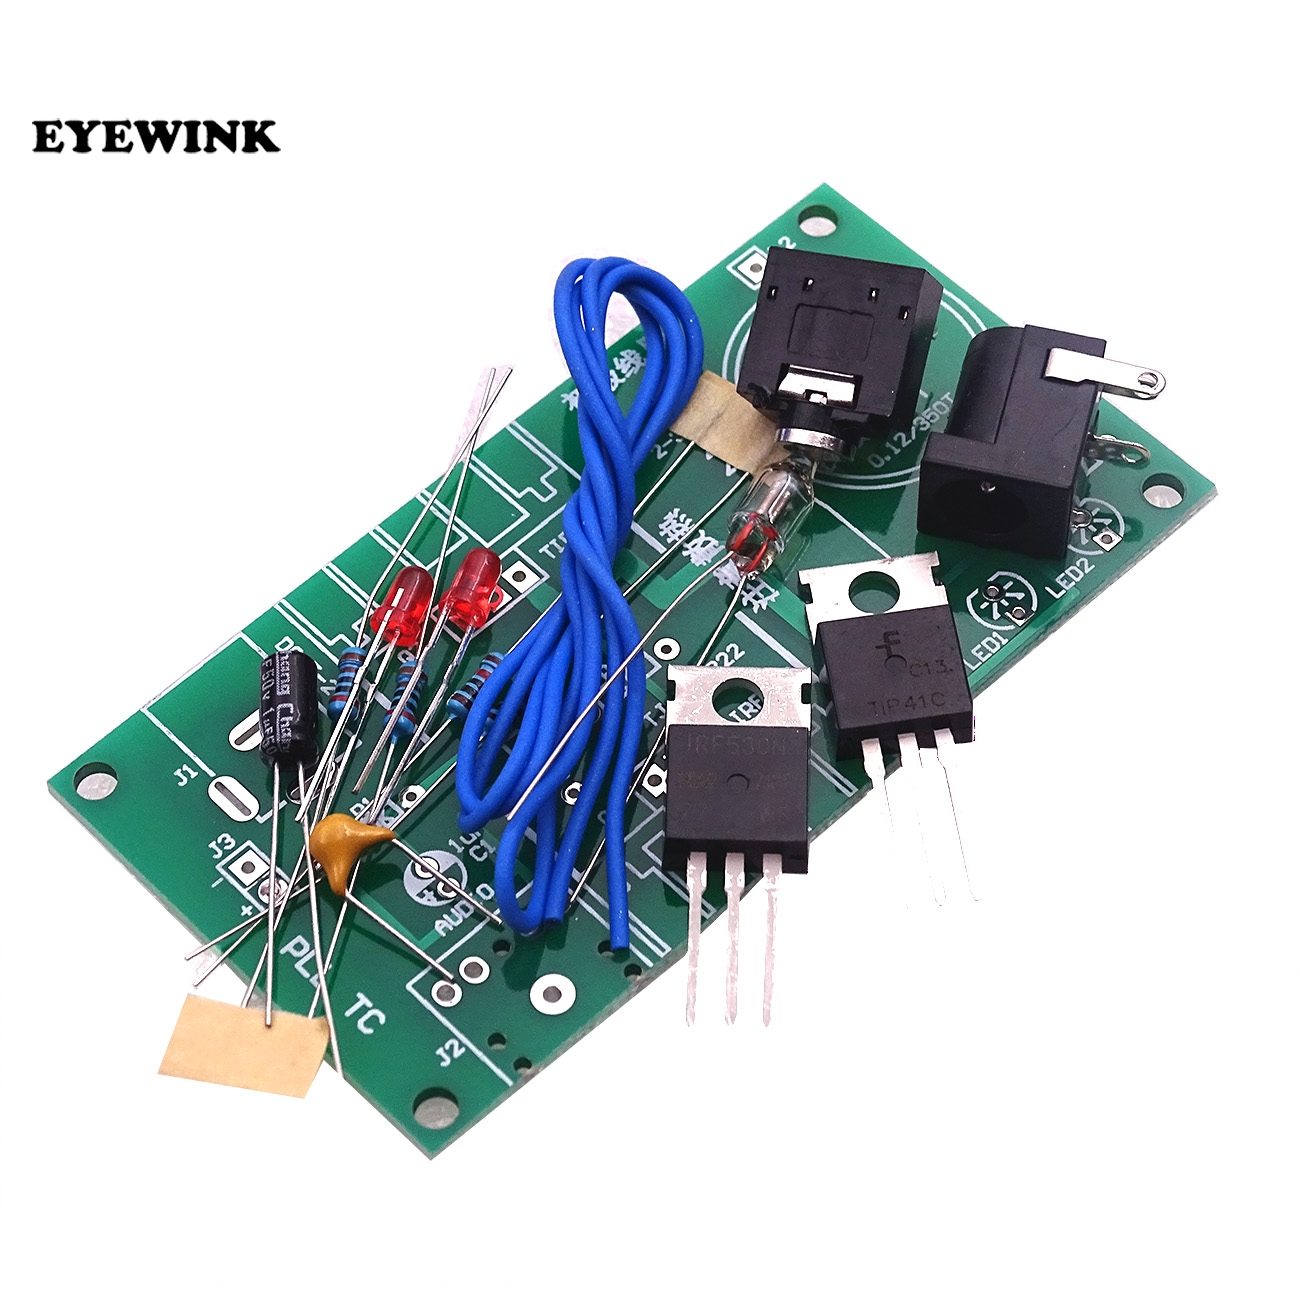 US $3 69 |15W Mini Tesla Coil Plasma Speaker Kit Music Wireless  Transmission Board Module DC 15 24V For DIY-in Integrated Circuits from  Electronic